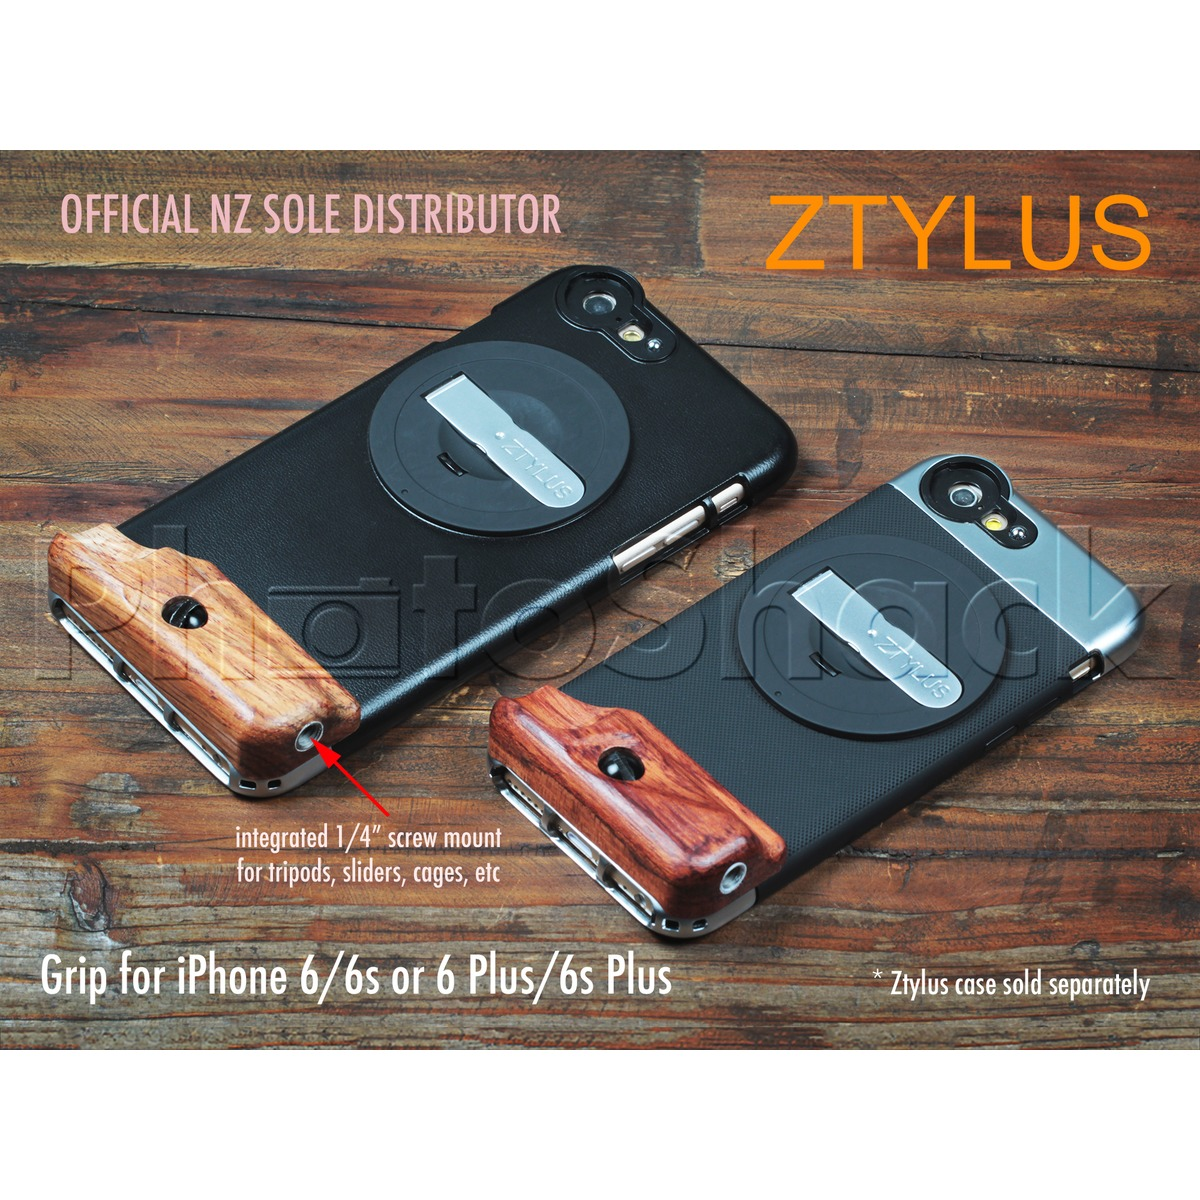 Hand Grip Attachment for iPhones (for Ztylus Cases)